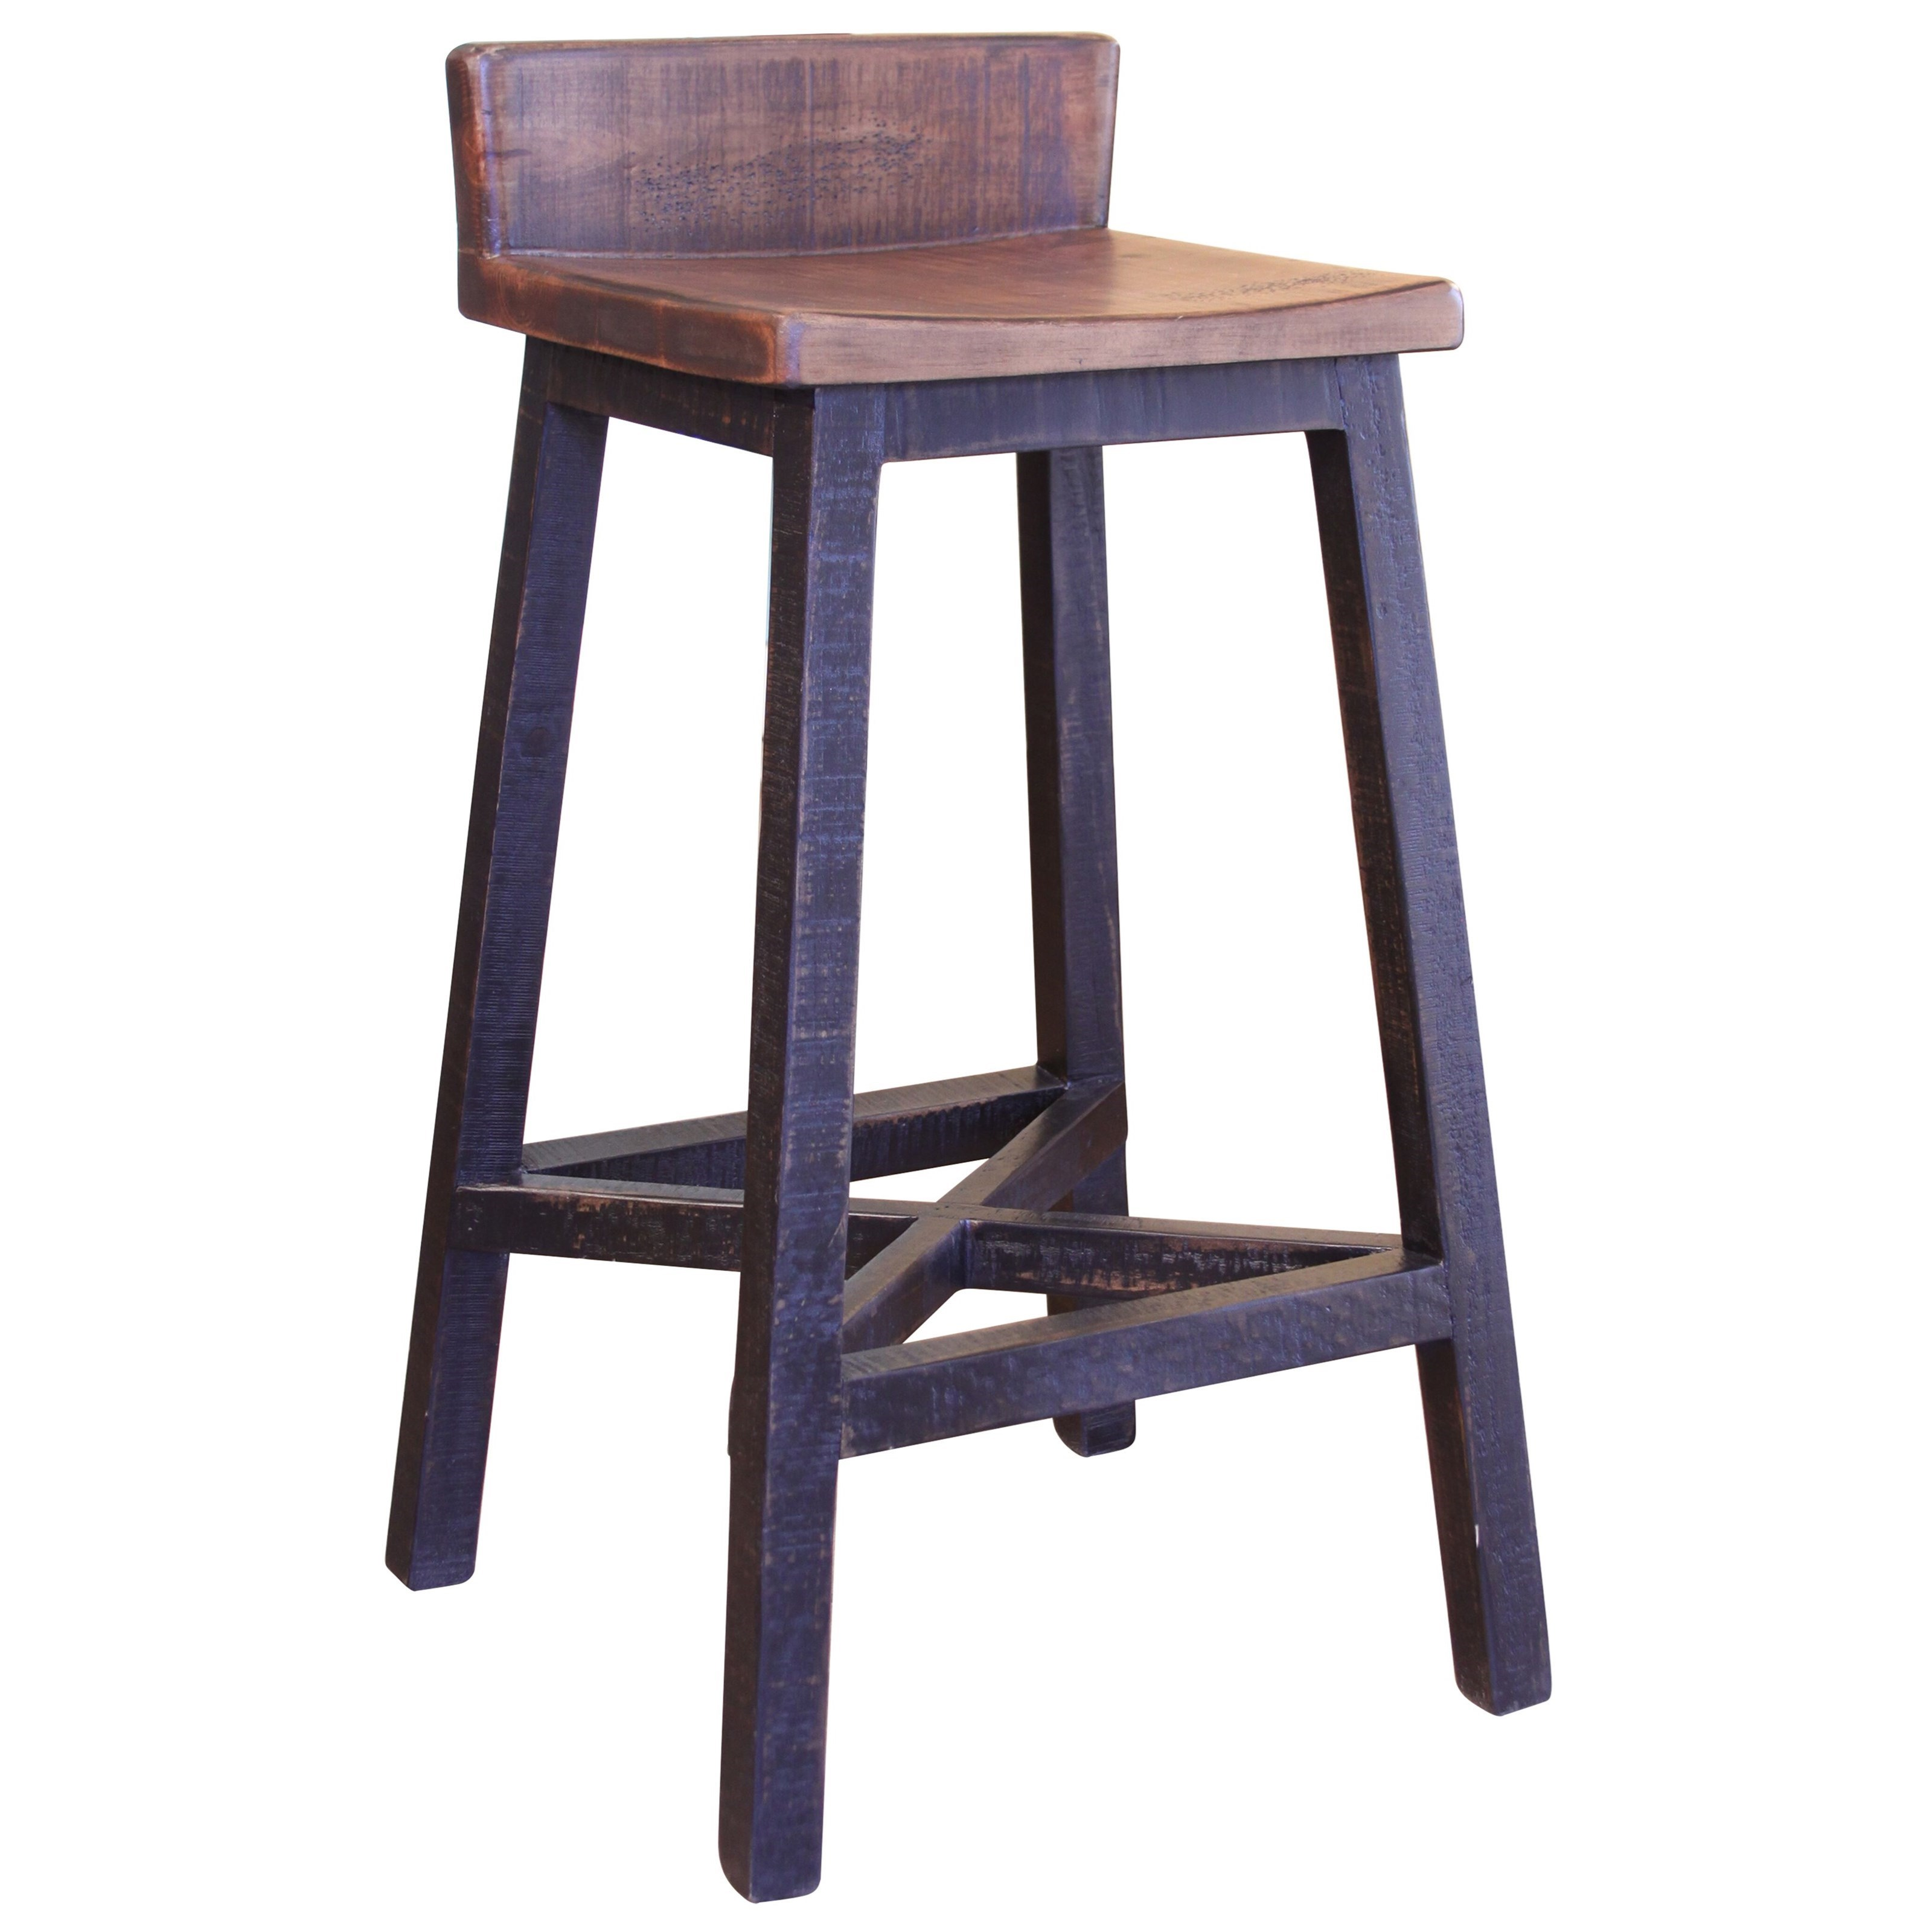 Pueblo Bar Stool by IF at Lindy's Furniture Company